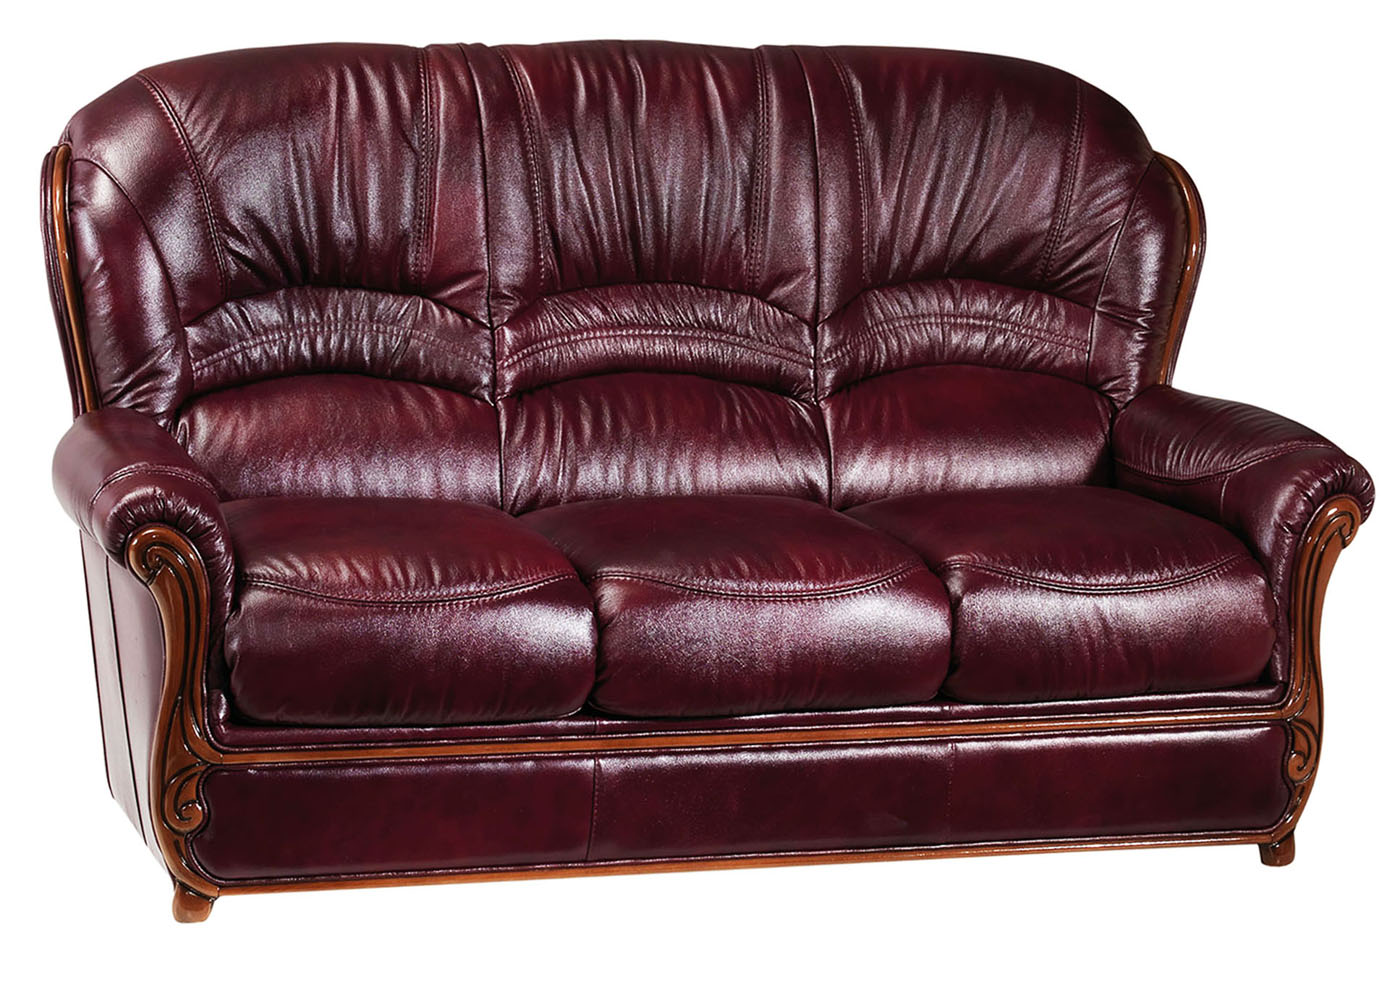 classic italian leather sofa cost of reupholstering bella burgundy traditional with wood accents